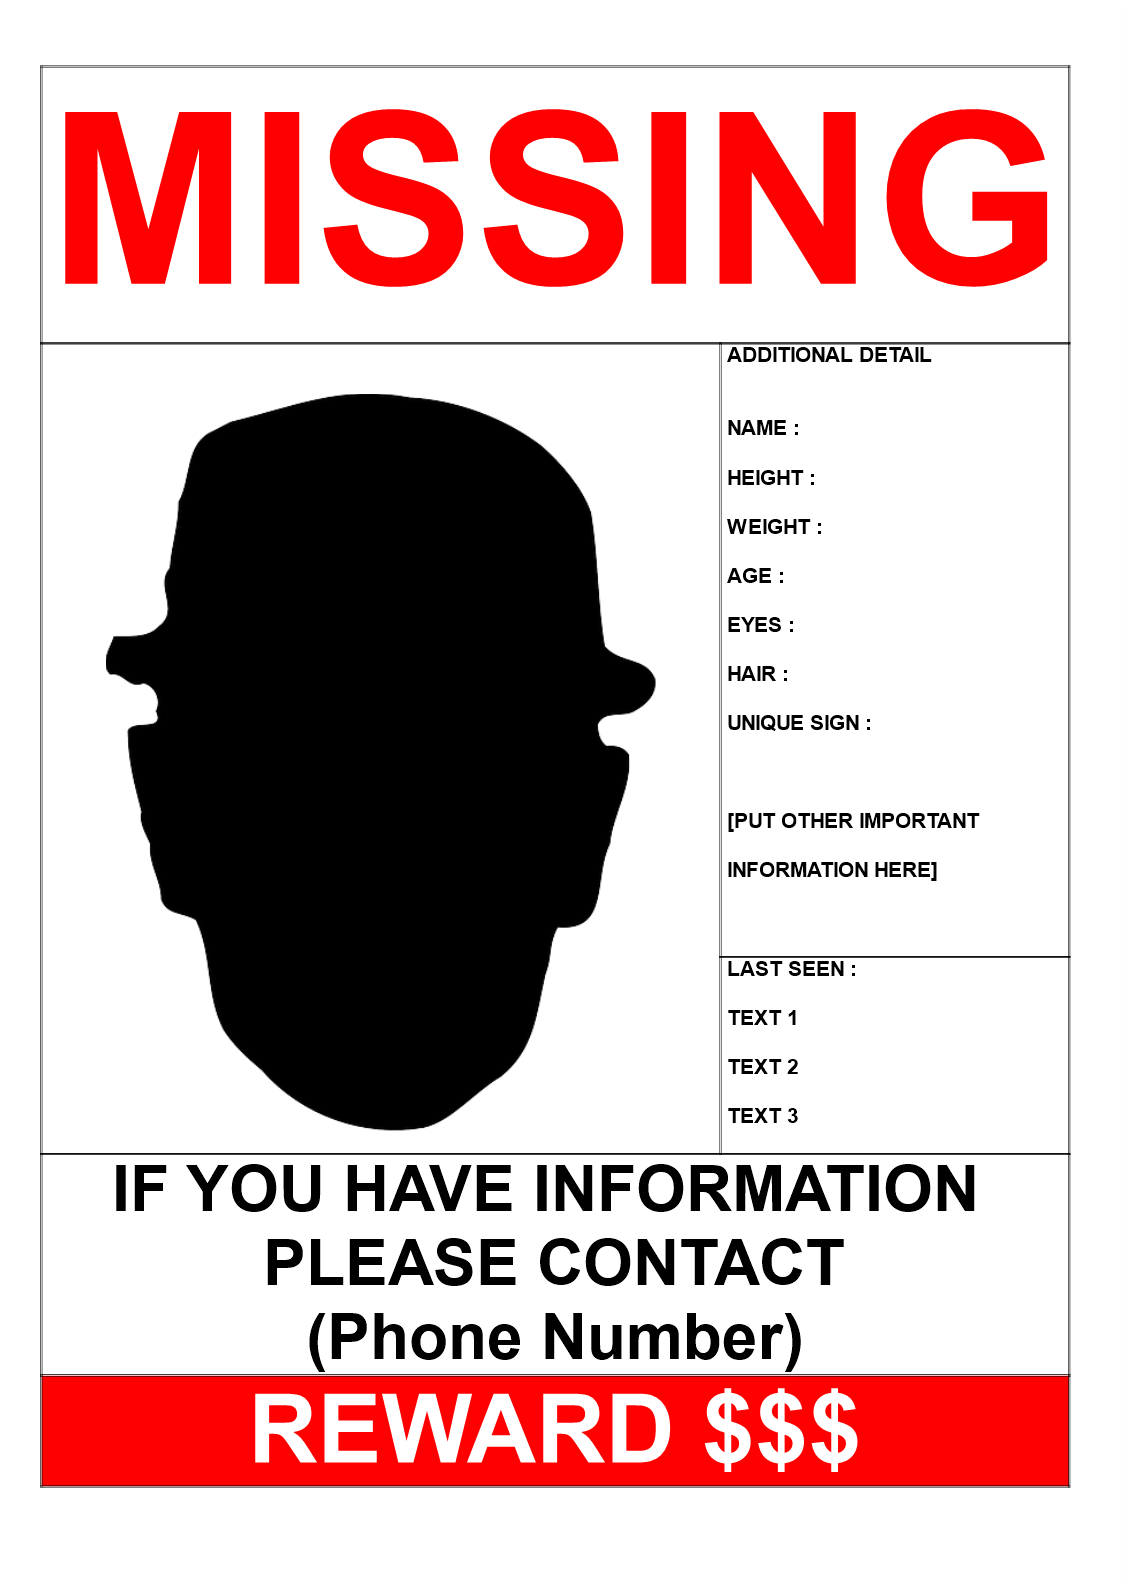 Missing Person Template With Reward A3 Size Main Image